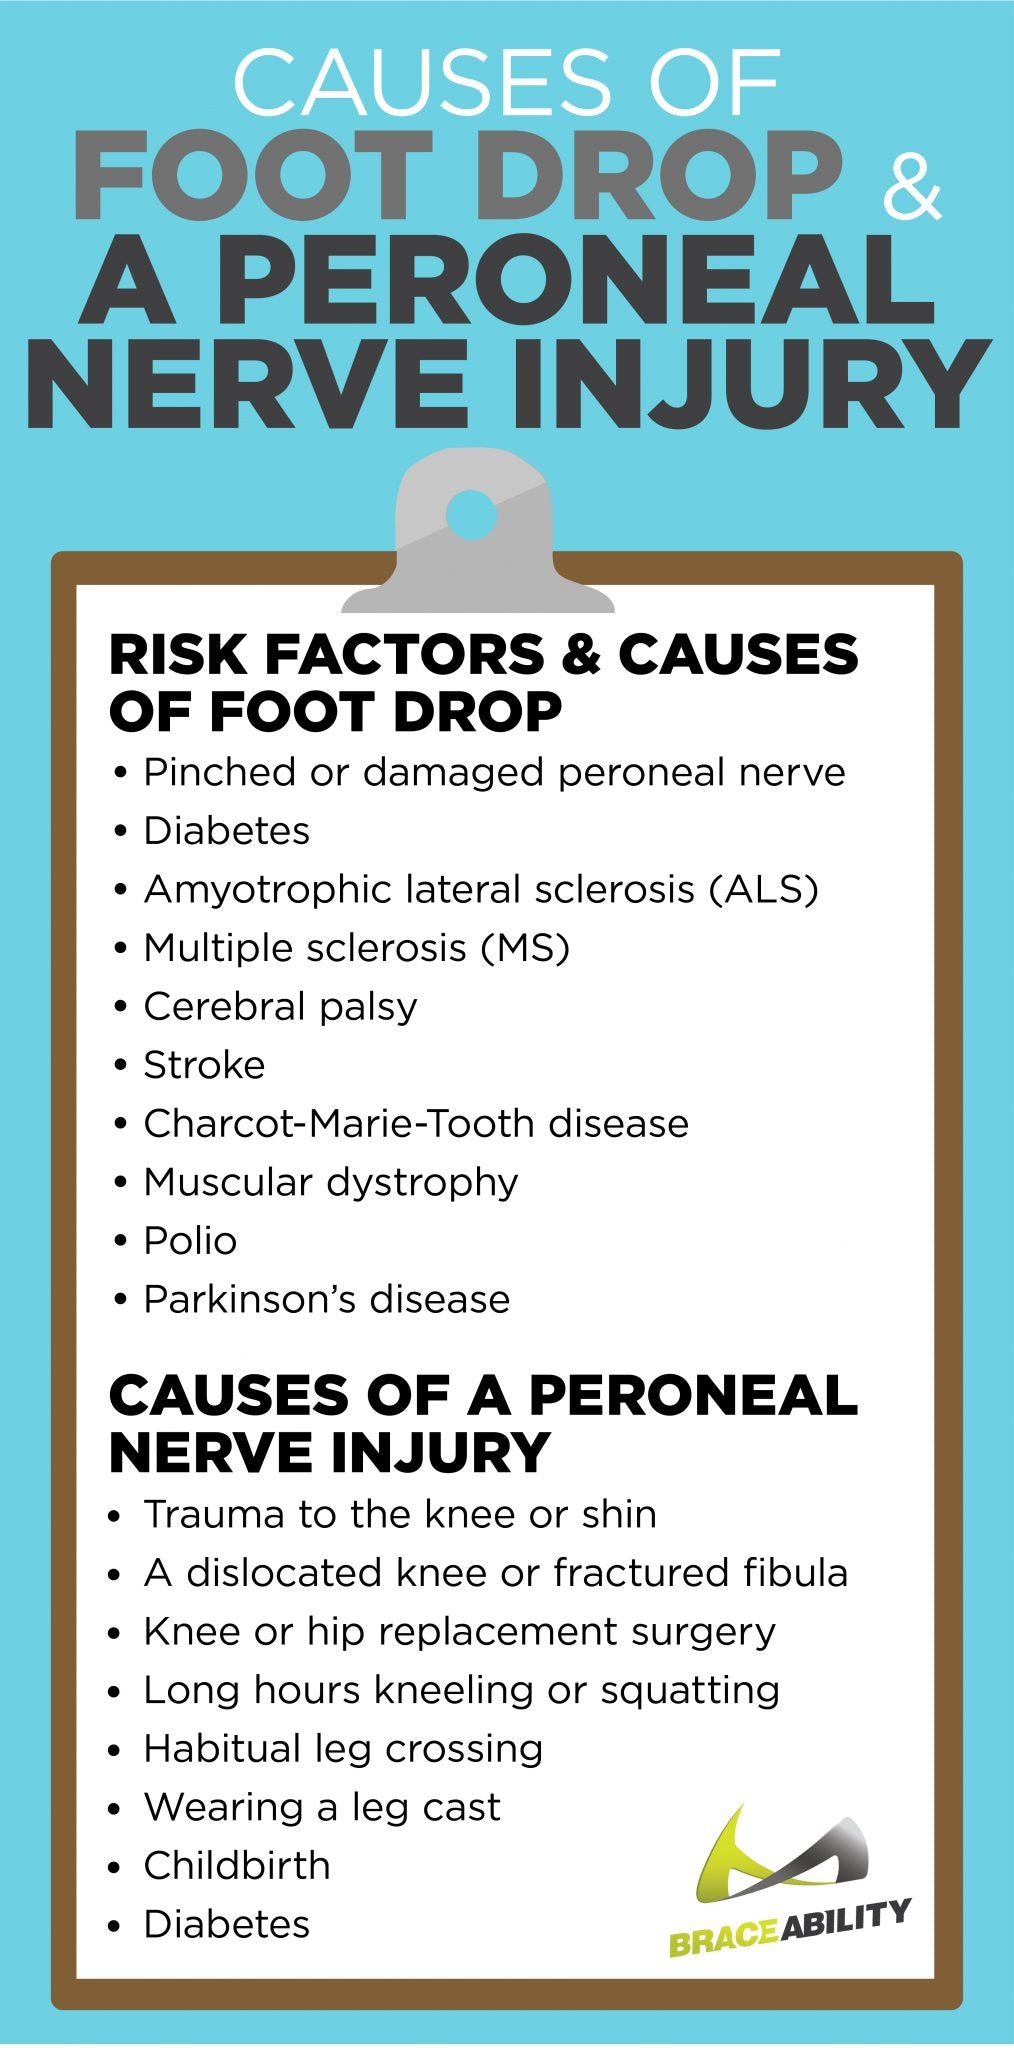 risks of foot drop and the difference between the causes of a peroneal nerve injury